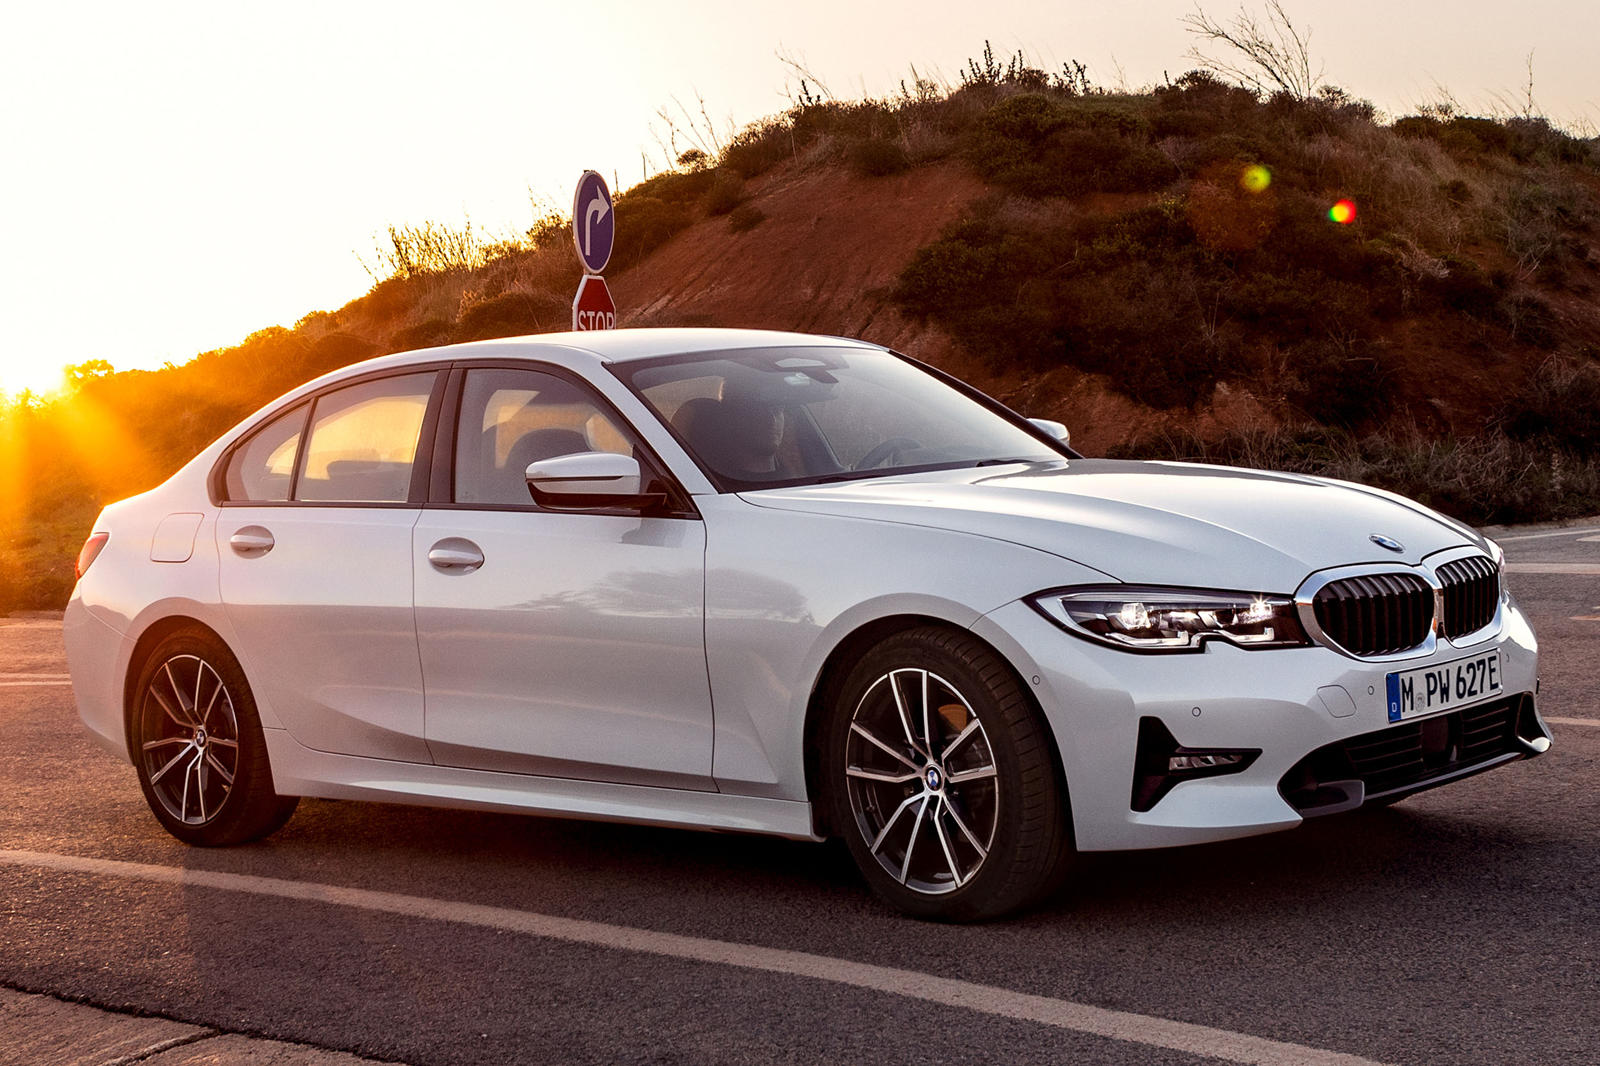 2021 bmw 3 series hybrid arrives with 288 horsepower | carbuzz